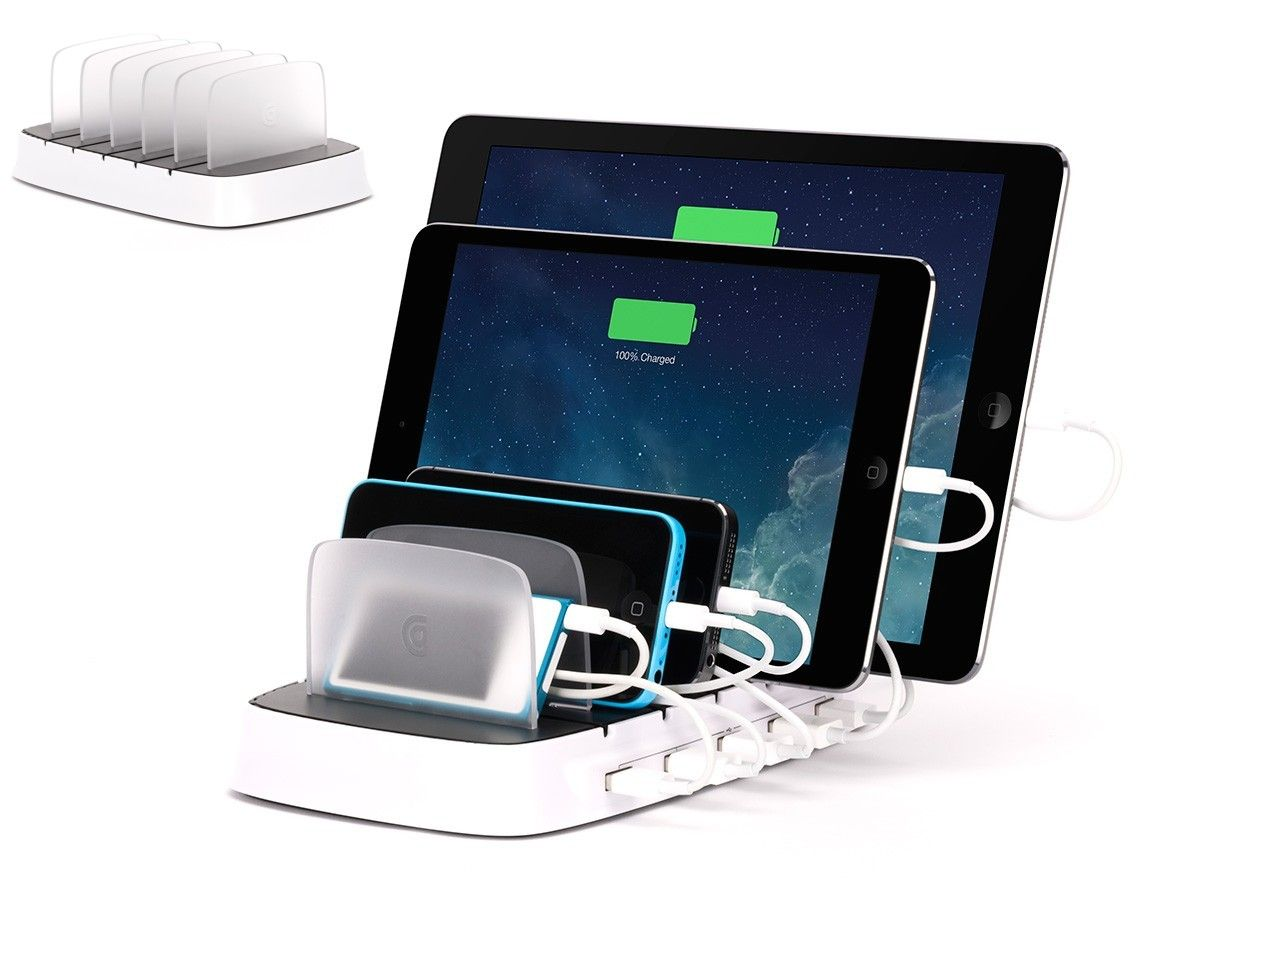 Awesome It Gives You A Place To Store And Charge 5 IOS Devices At One Time,